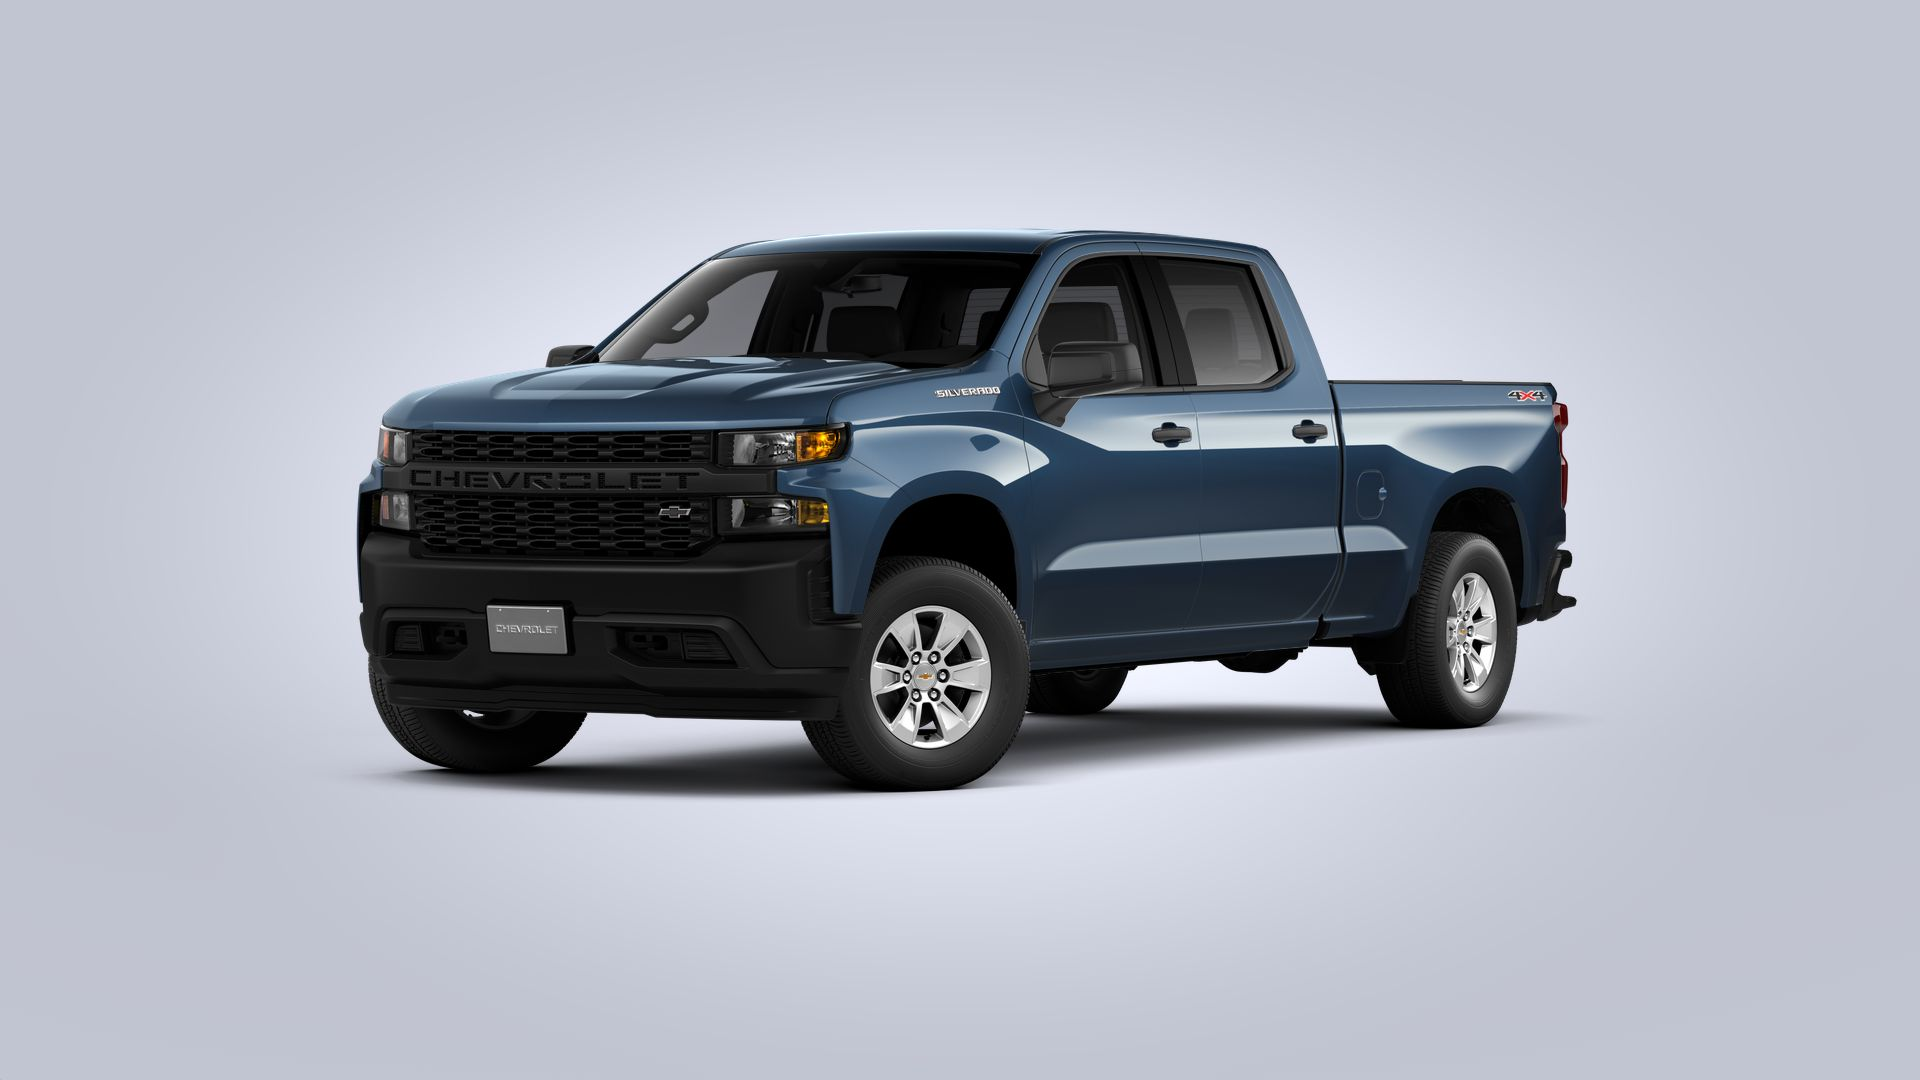 New 2021 Chevrolet Silverado 1500 WT FOUR WHEEL DRIVE Crew Cab